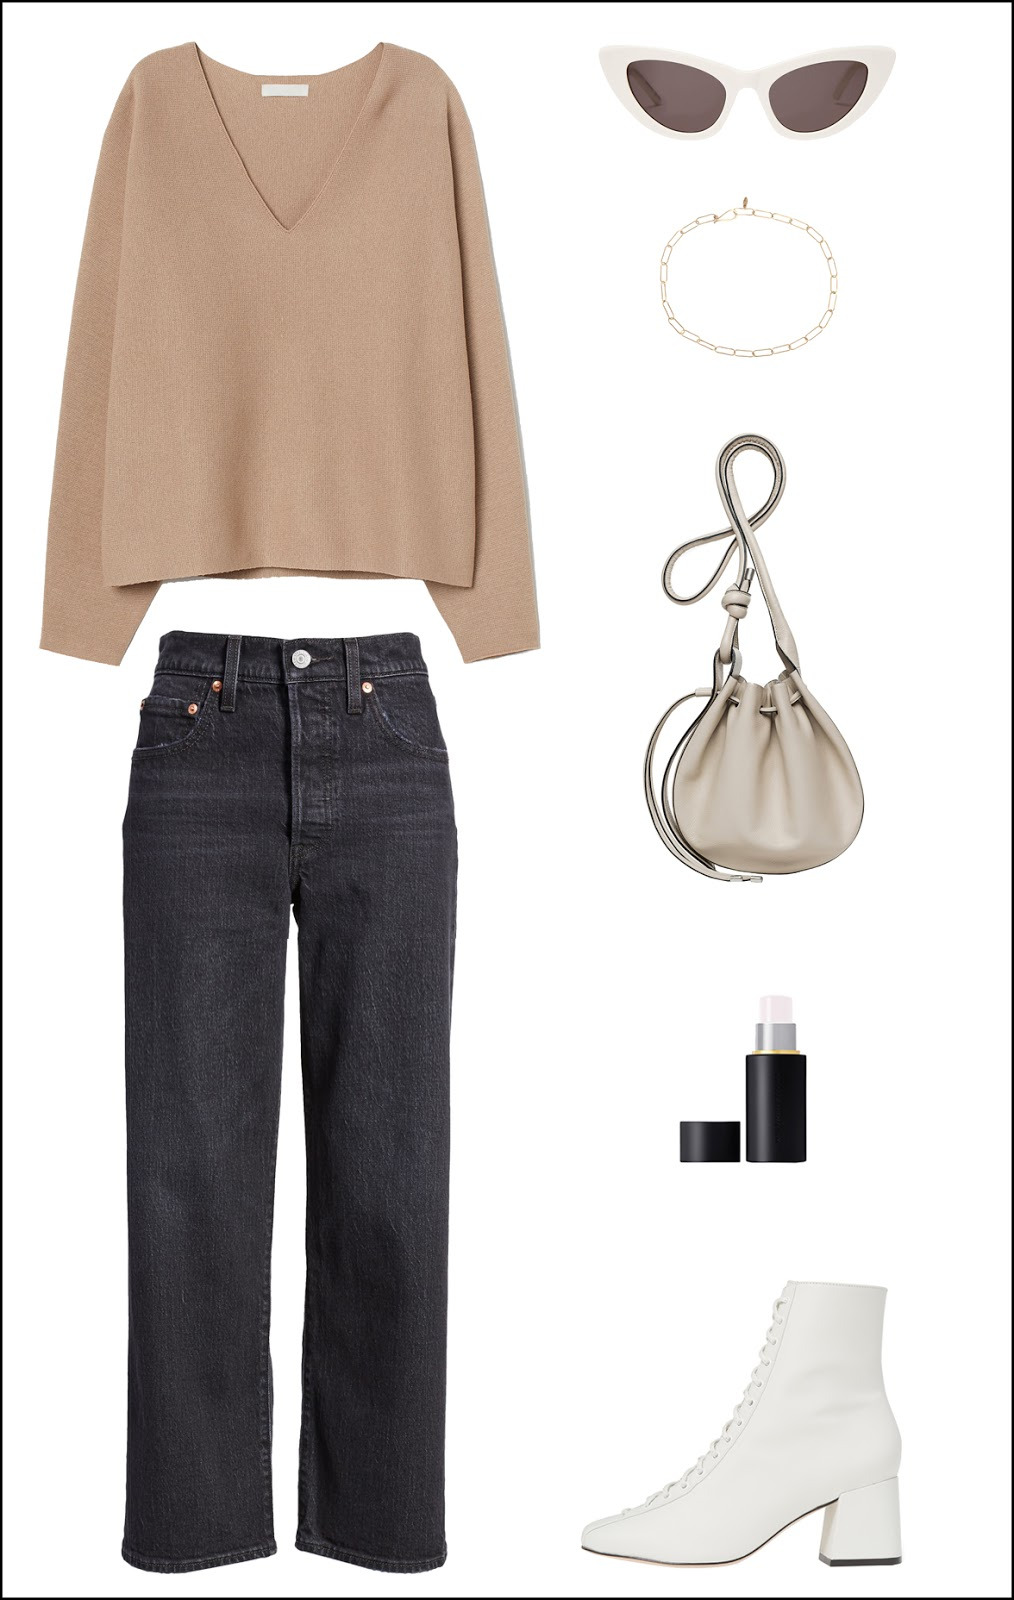 Everyday Spring Outfit Idea — Camel v-neck sweater, cat-eye sunglasses, chain necklace, black straight-leg jeans, grey mini bag, and white lace-up ankle boots